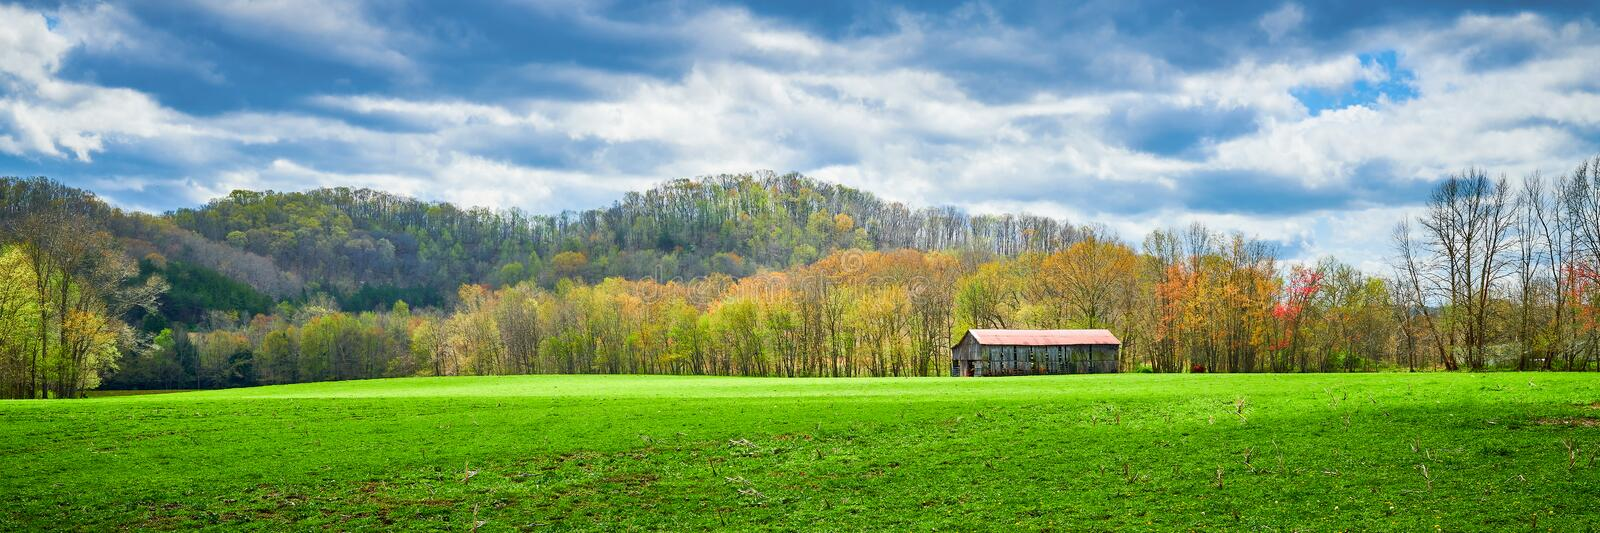 Kentucky Tobacco Barn in Early Spring stock image